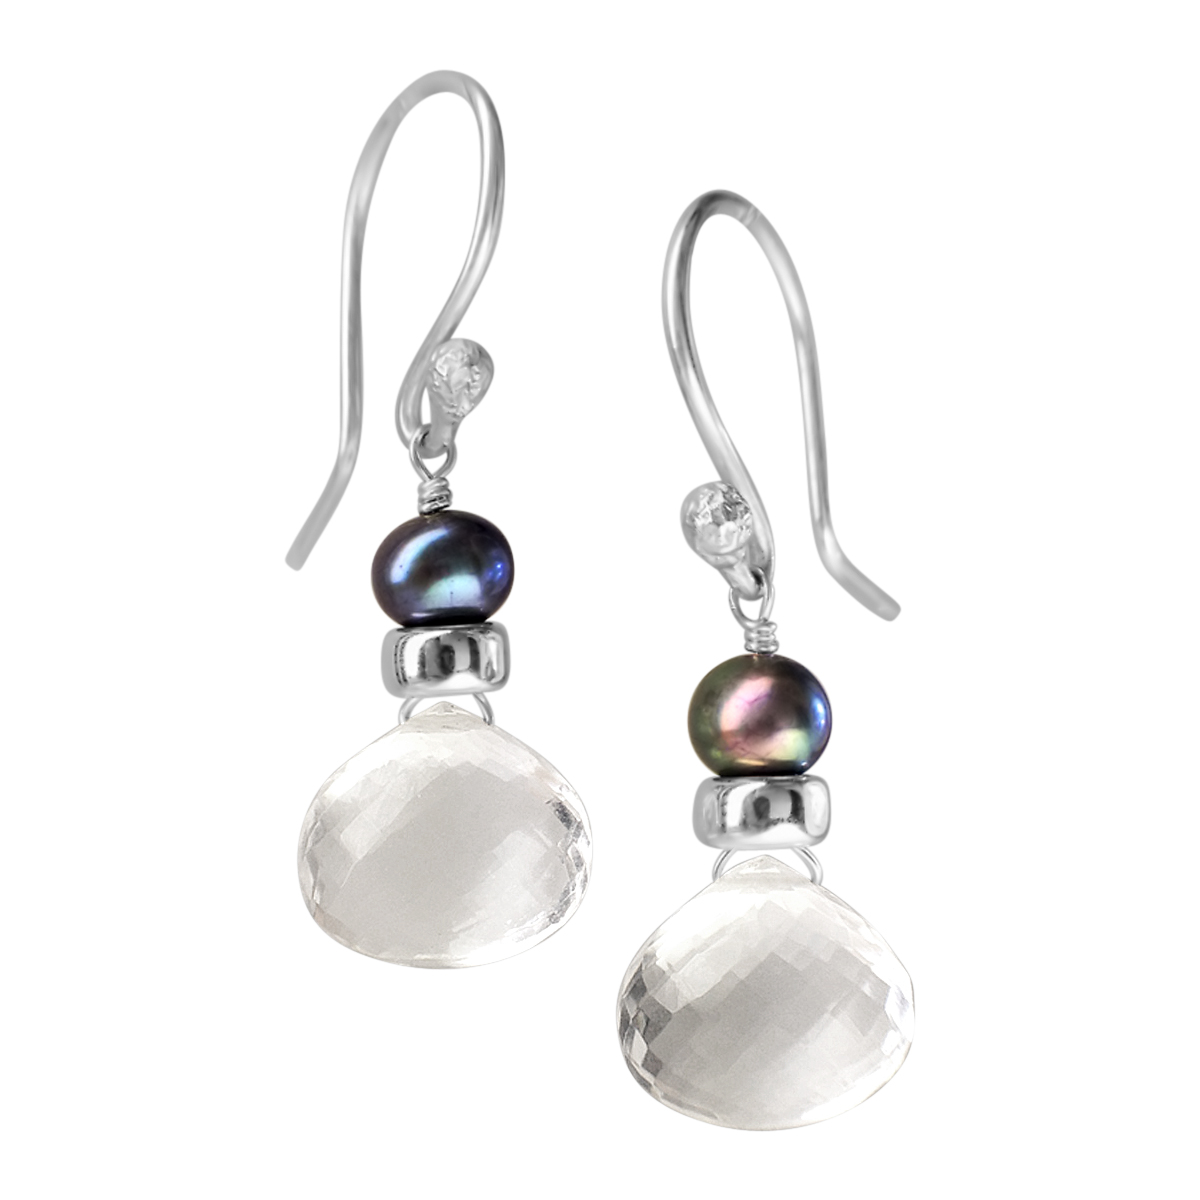 Perfume Bottle crystal quartz blue pearl earrings